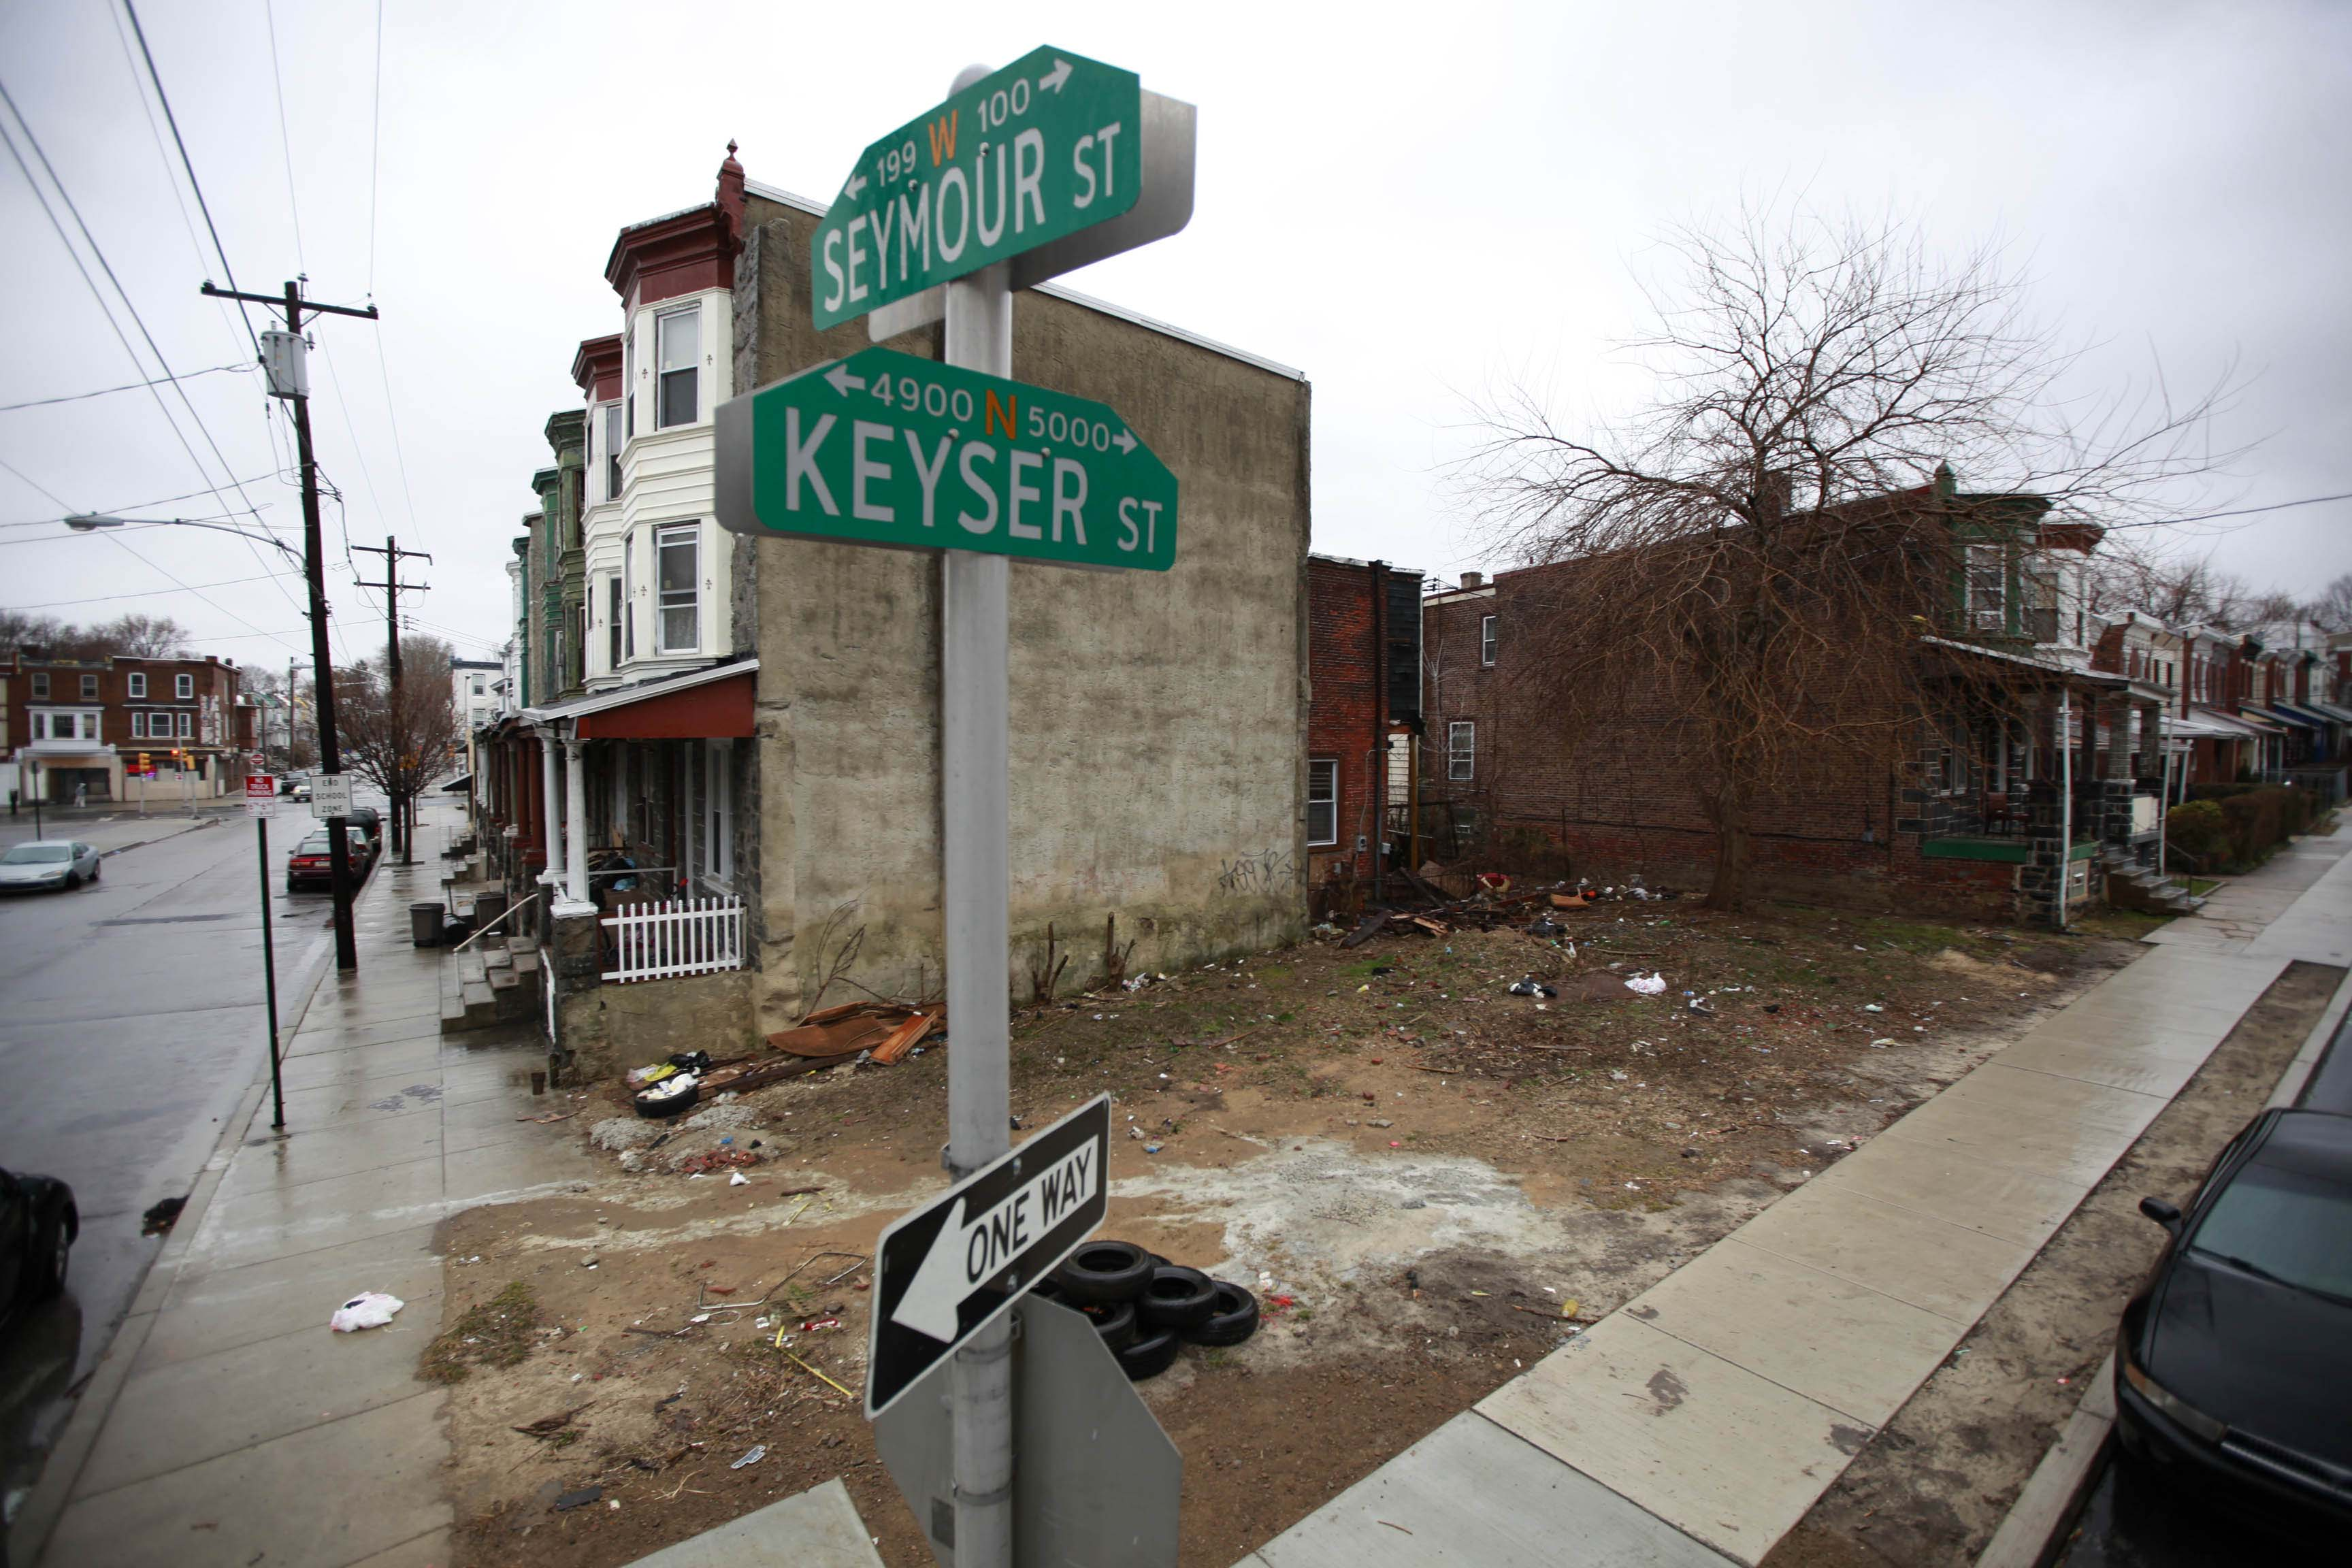 Seymour and Keyser streets